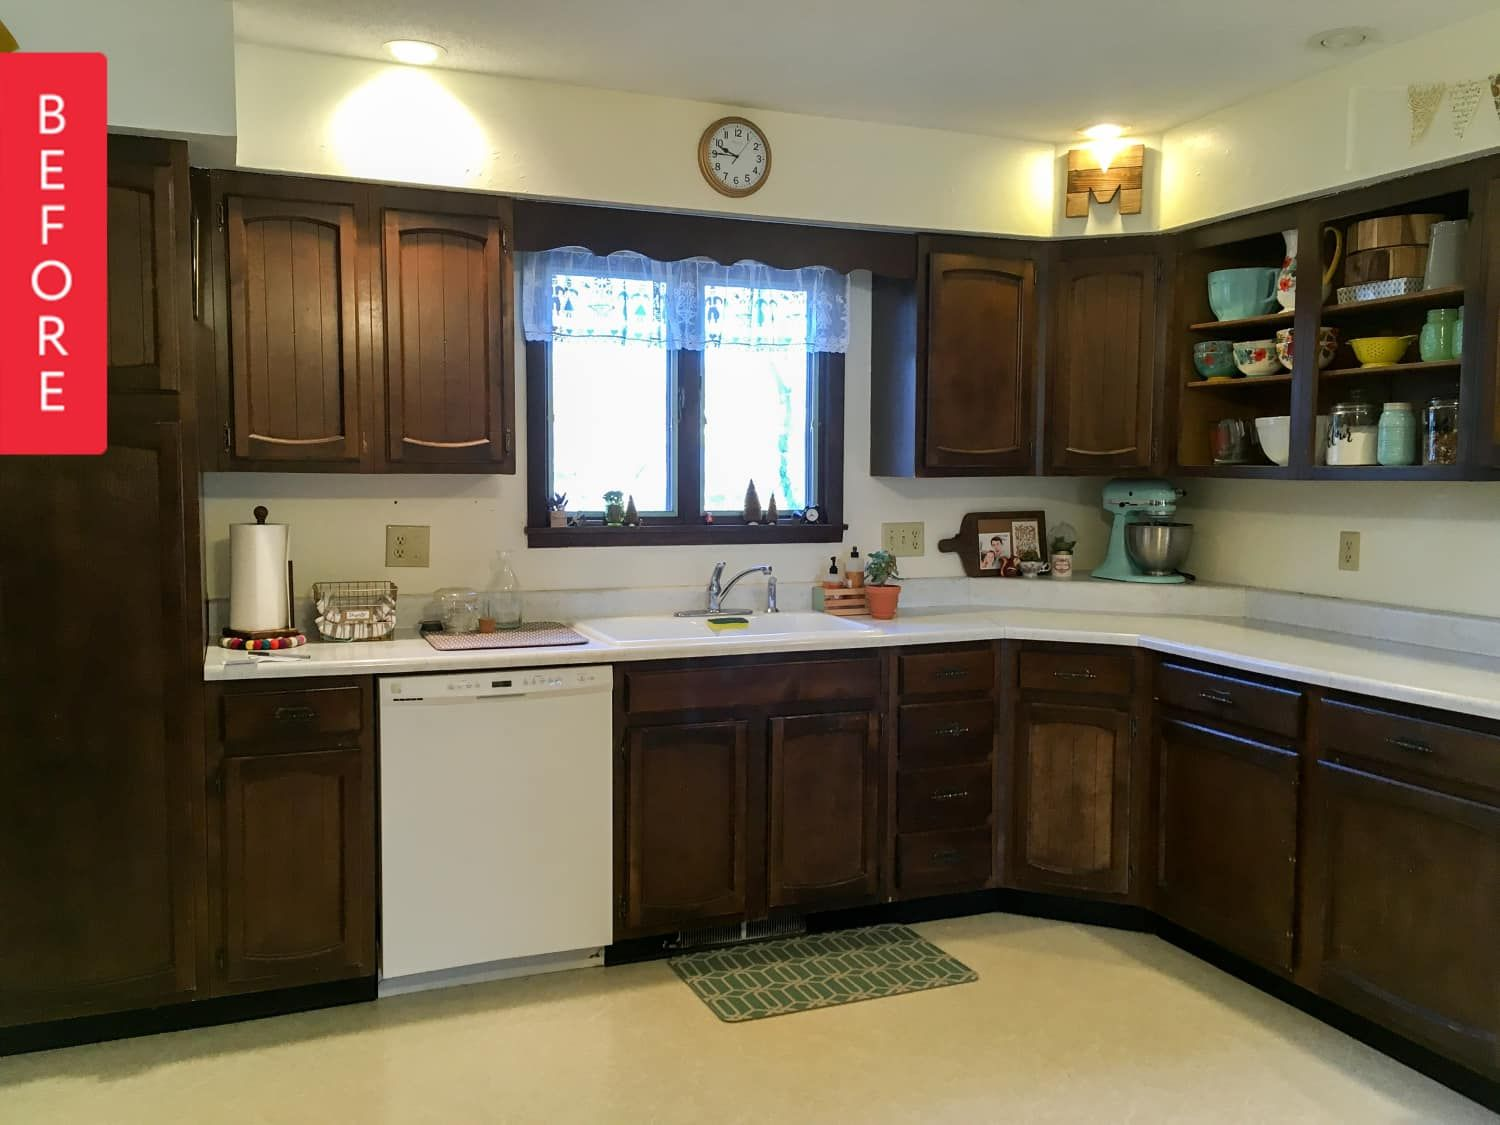 Before After An Under 200 Creatively Colorful Kitchen Makeover Kitchen Colors Kitchen Cabinets Kitchen Makeover